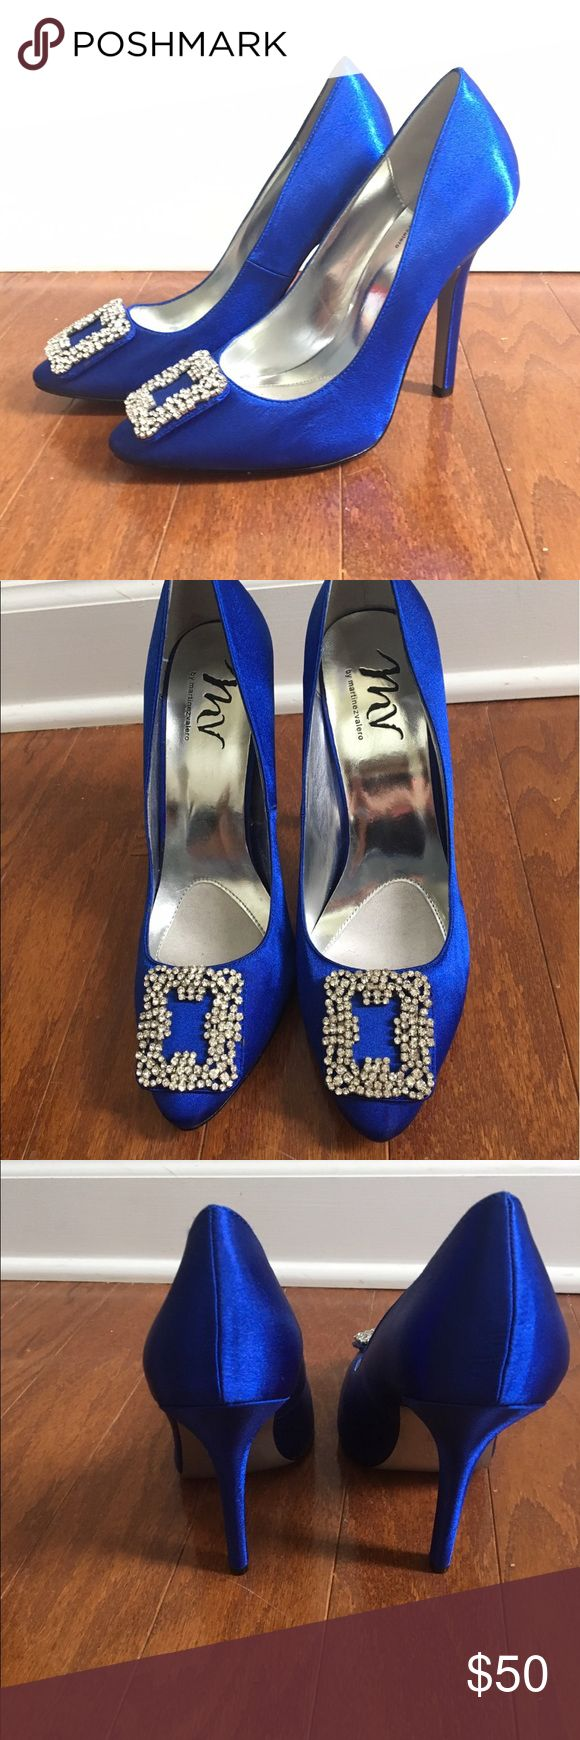 25+ best ideas about Carrie bradshaw shoes on Pinterest ...